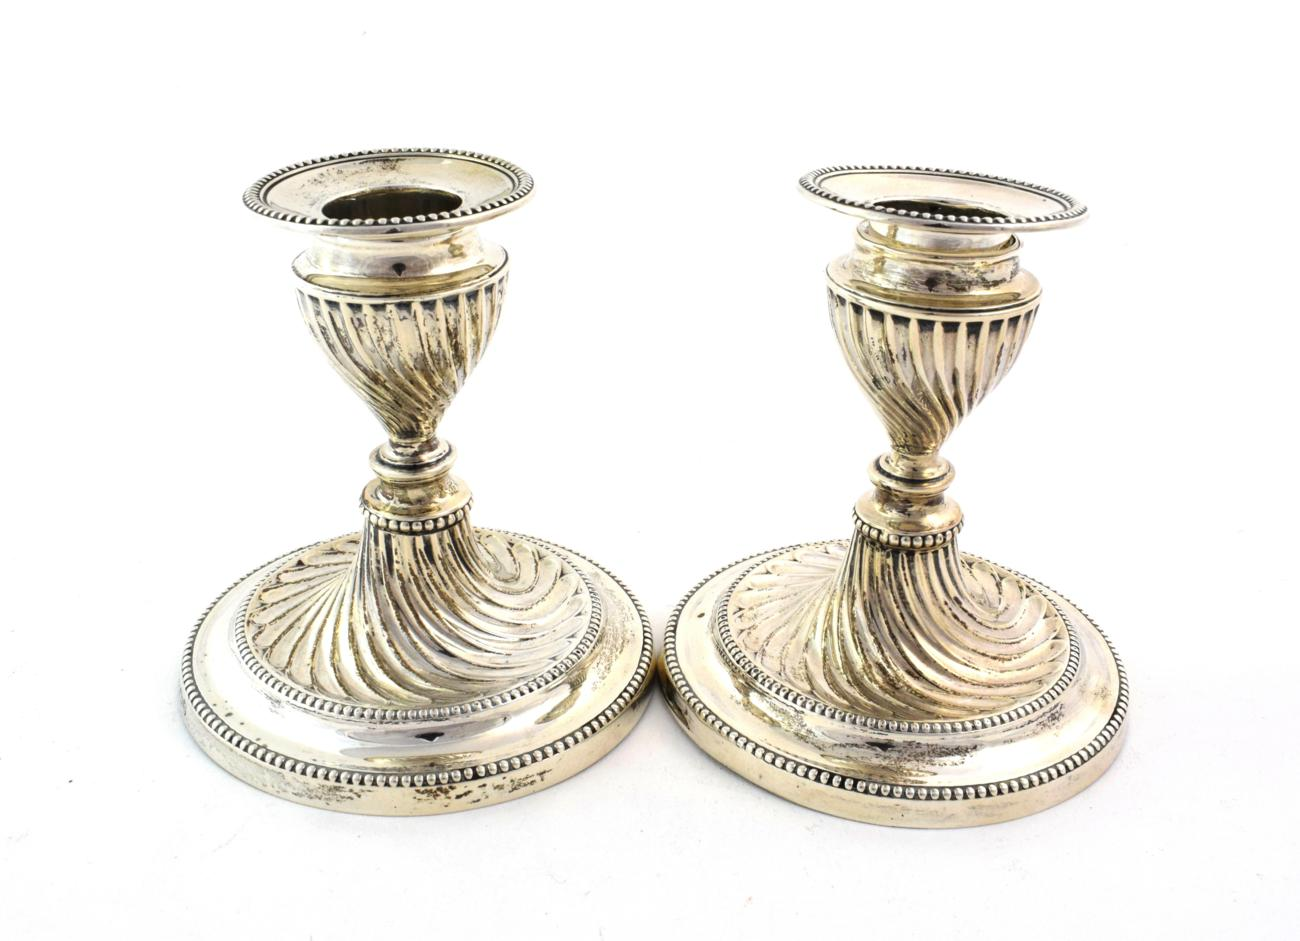 Lot 60 - A Pair of Victorian Silver Candlesticks, by Hawksworth, Eyre and Co, Sheffield, 1899, spirally-